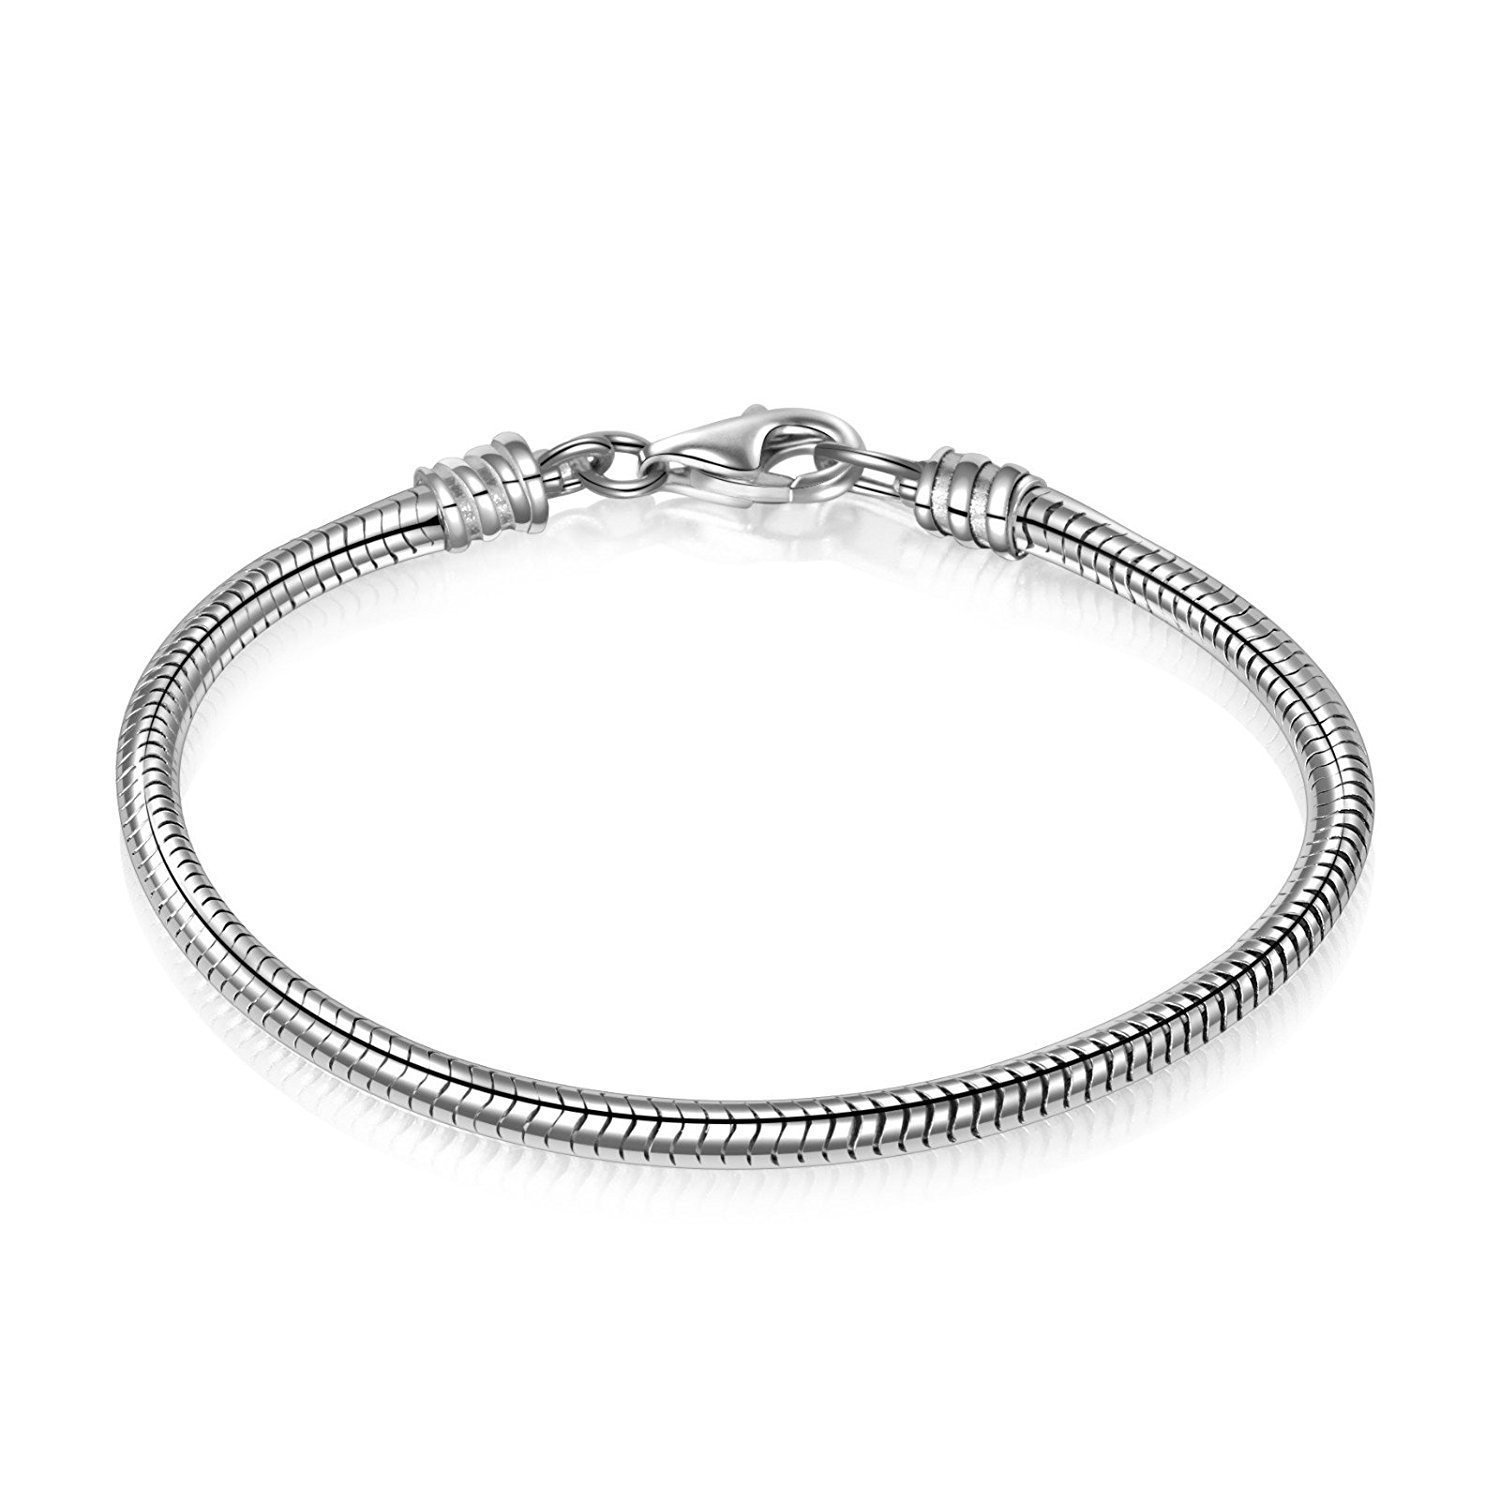 Angemiel 925 Sterling Silver Snake Chain Bracelet for European Bracelets Charms Bead (6.3 Inches)